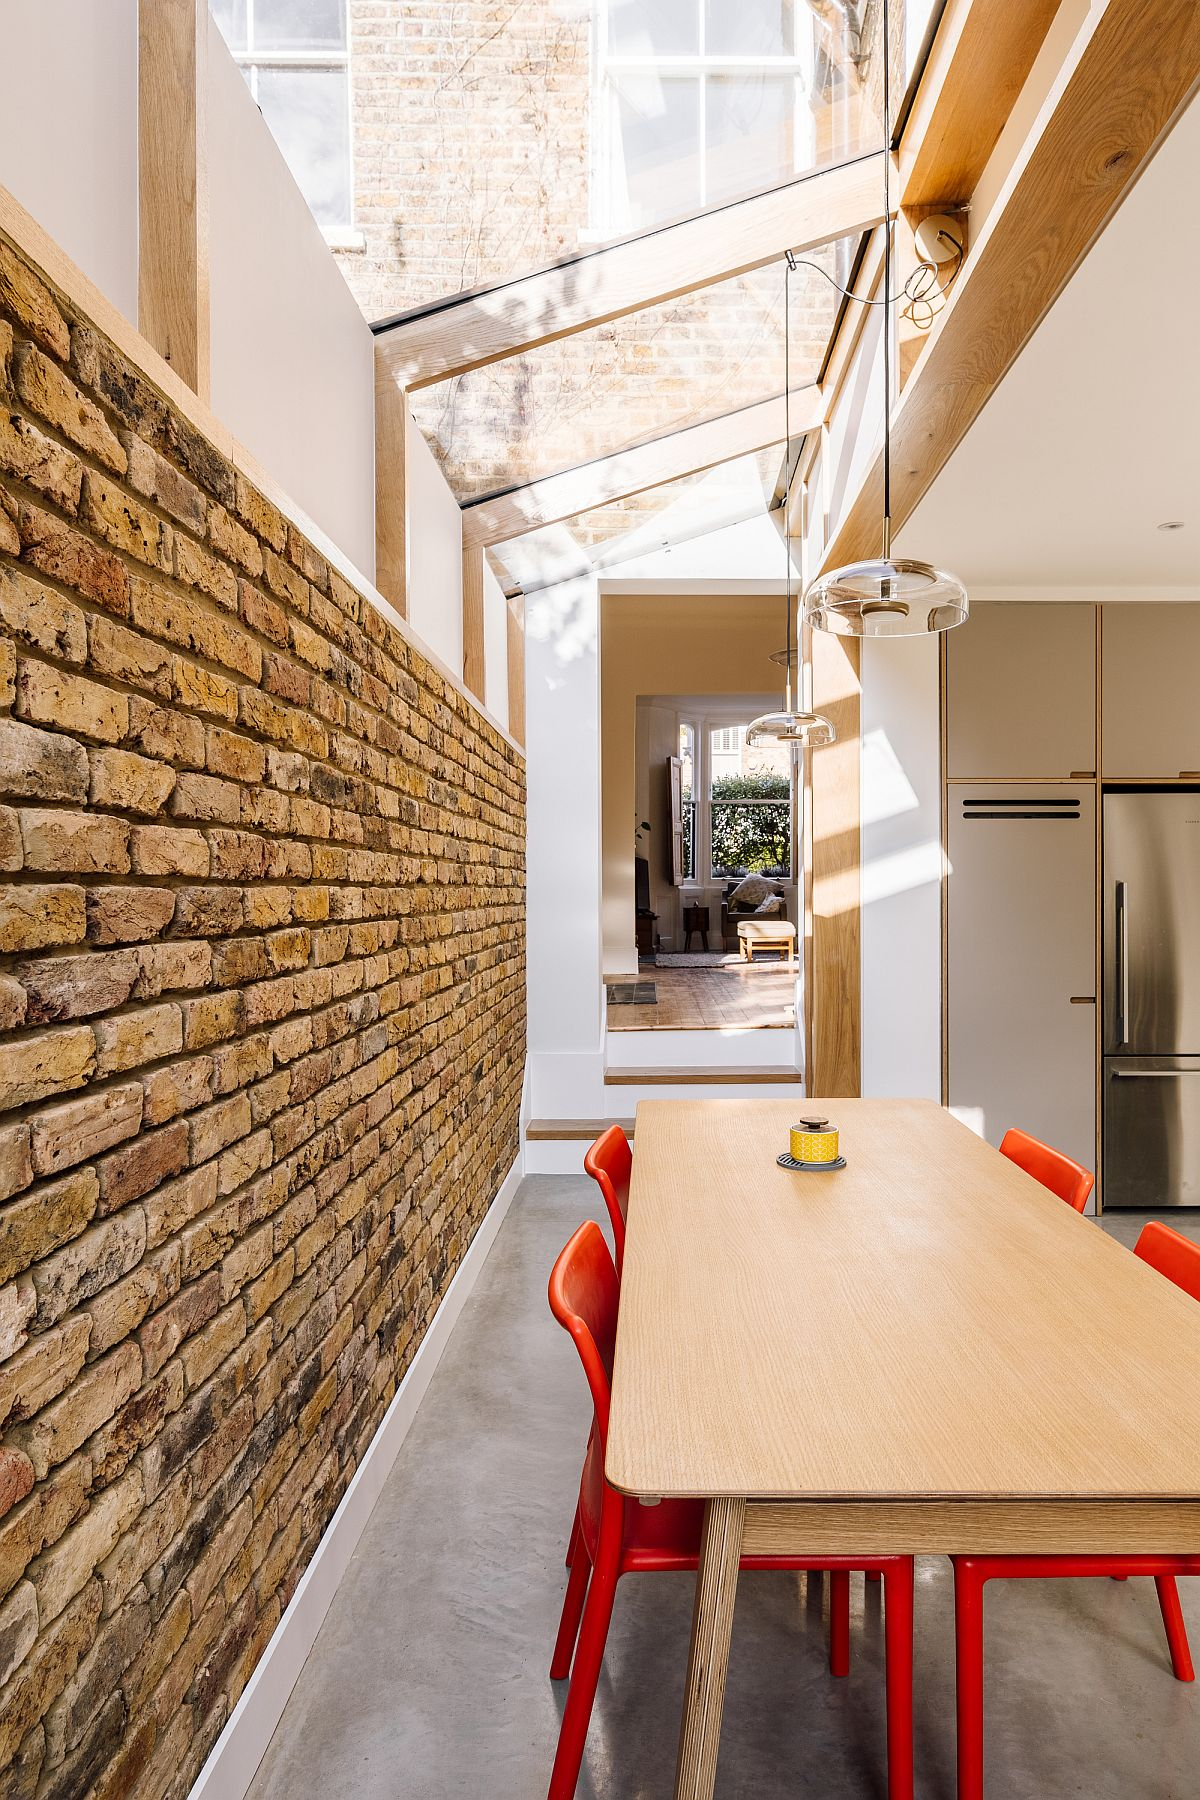 Dining area under the roof light of the kitchen gives you the experience of eating outdoors